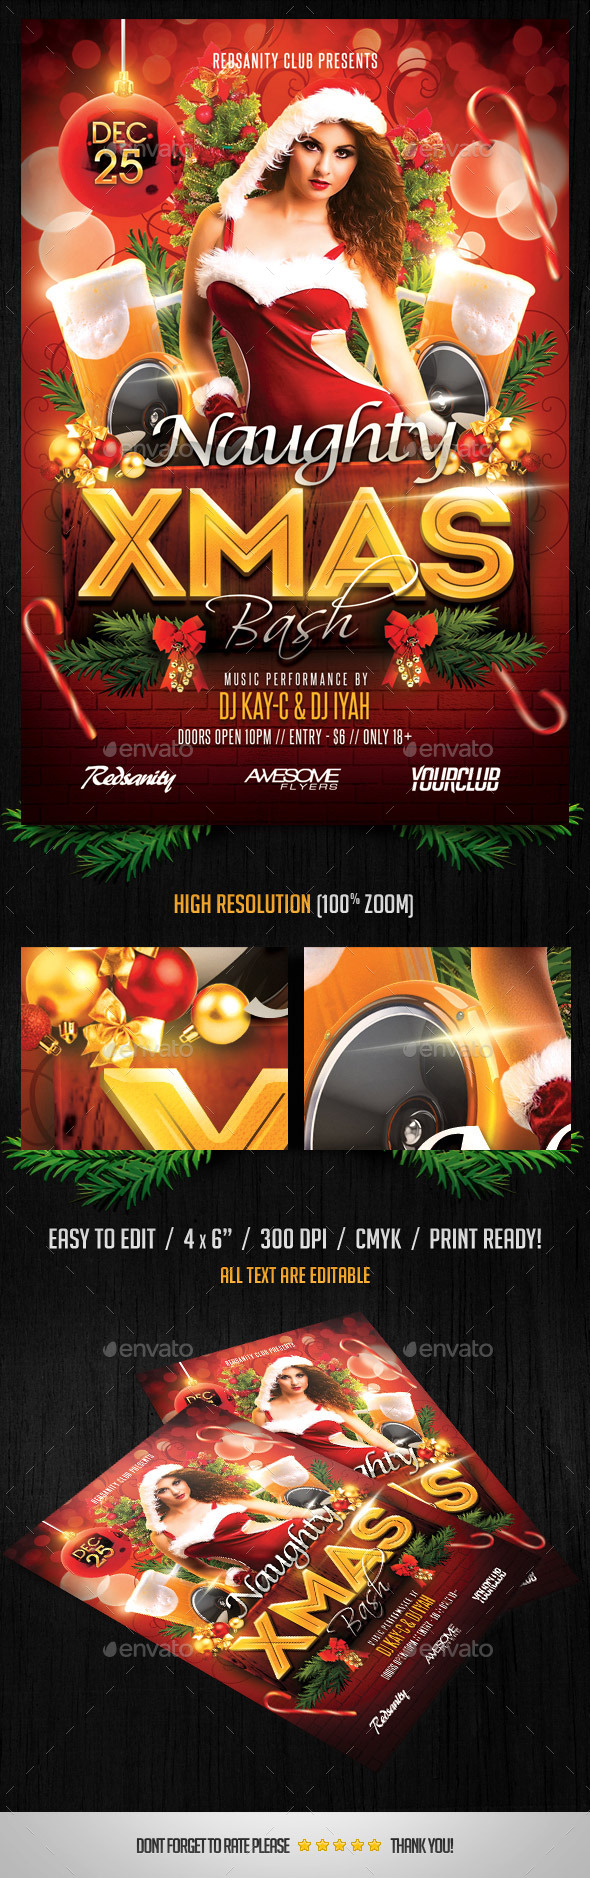 Naughty Xmas Bash Flyer - Holidays Events